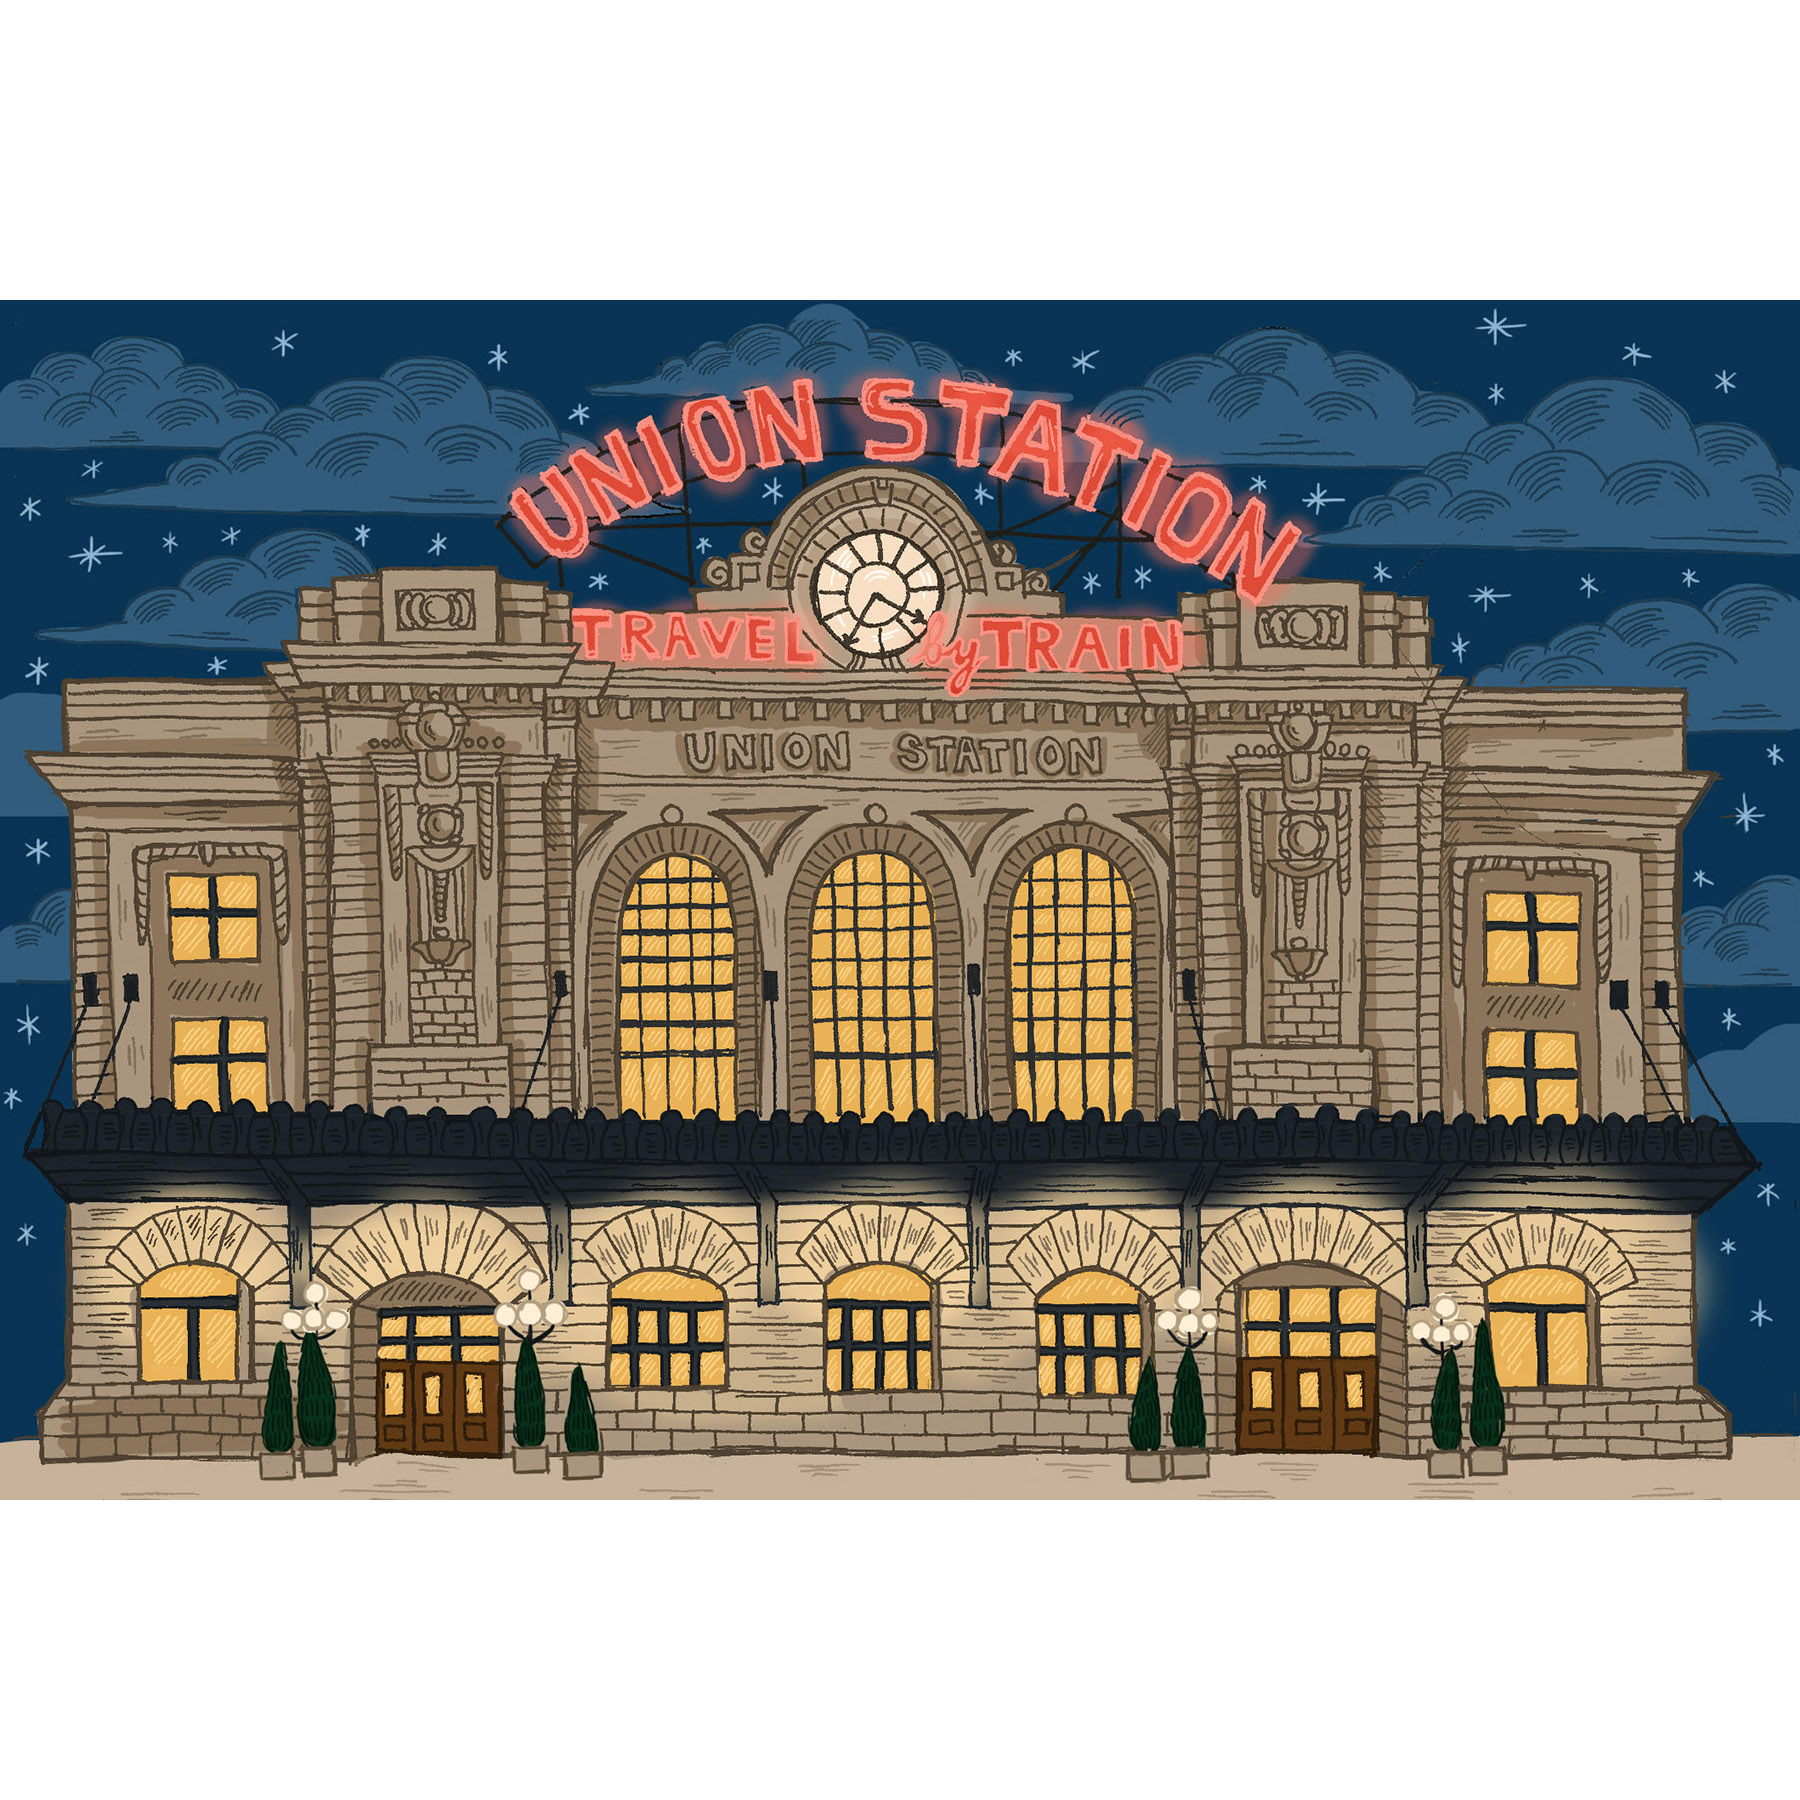 union station postcard 4x6 for insta.jpg